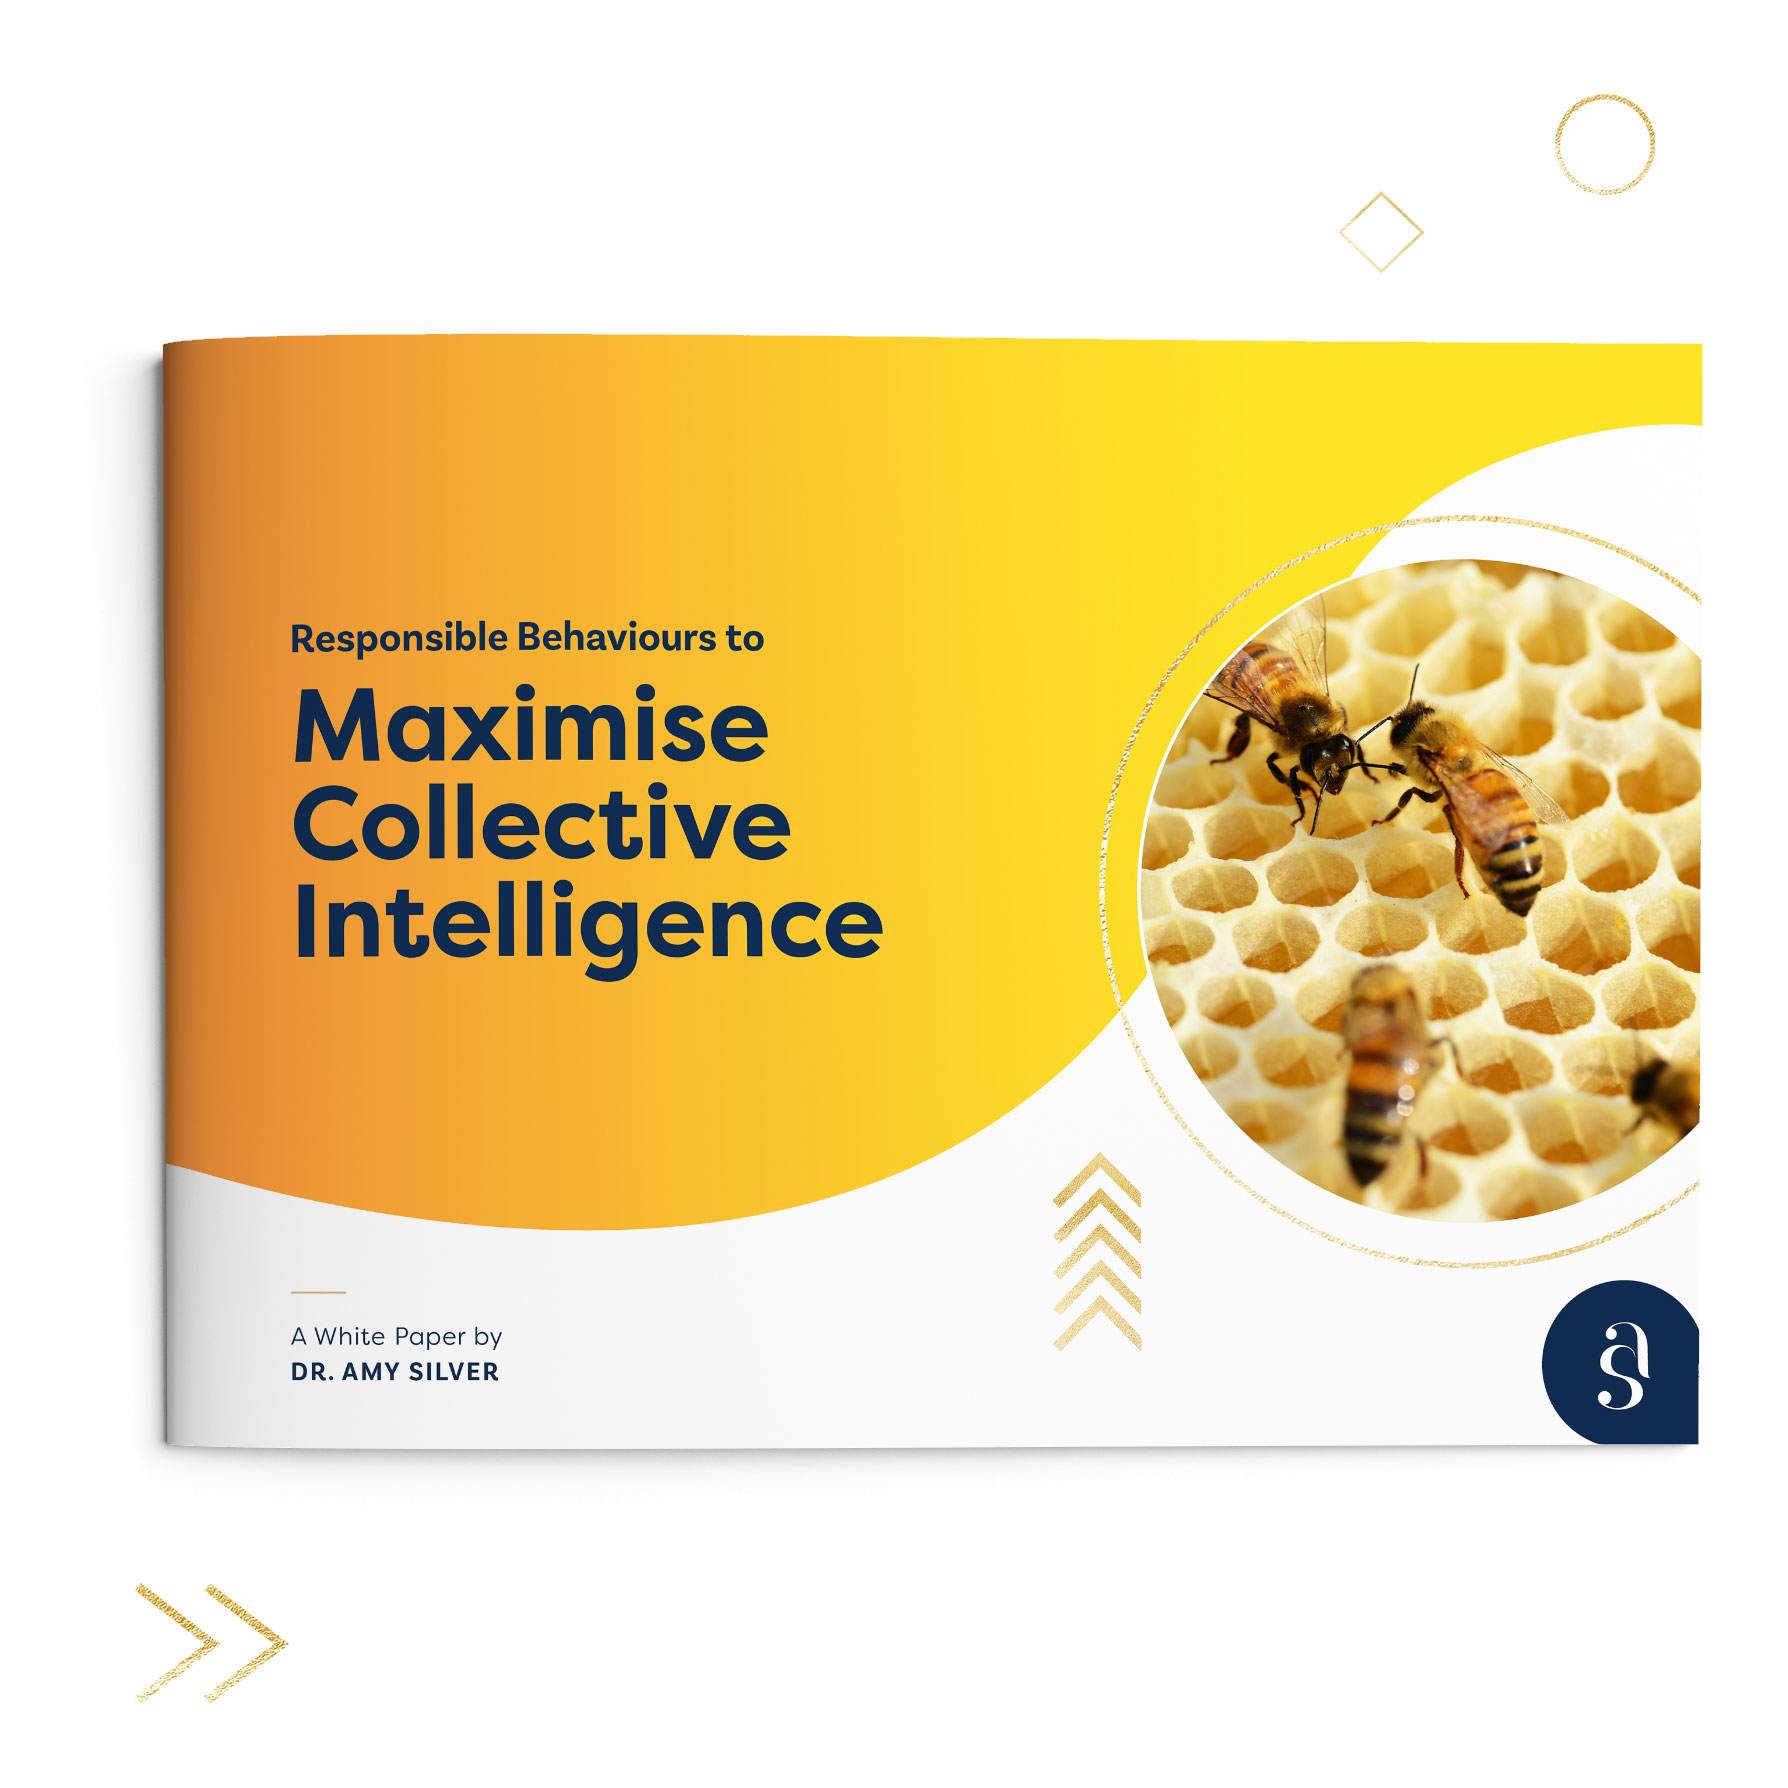 Click to download  the Dr Amy Silver's white paper:  Responsible Behaviours to Maximise Collective Intelligence